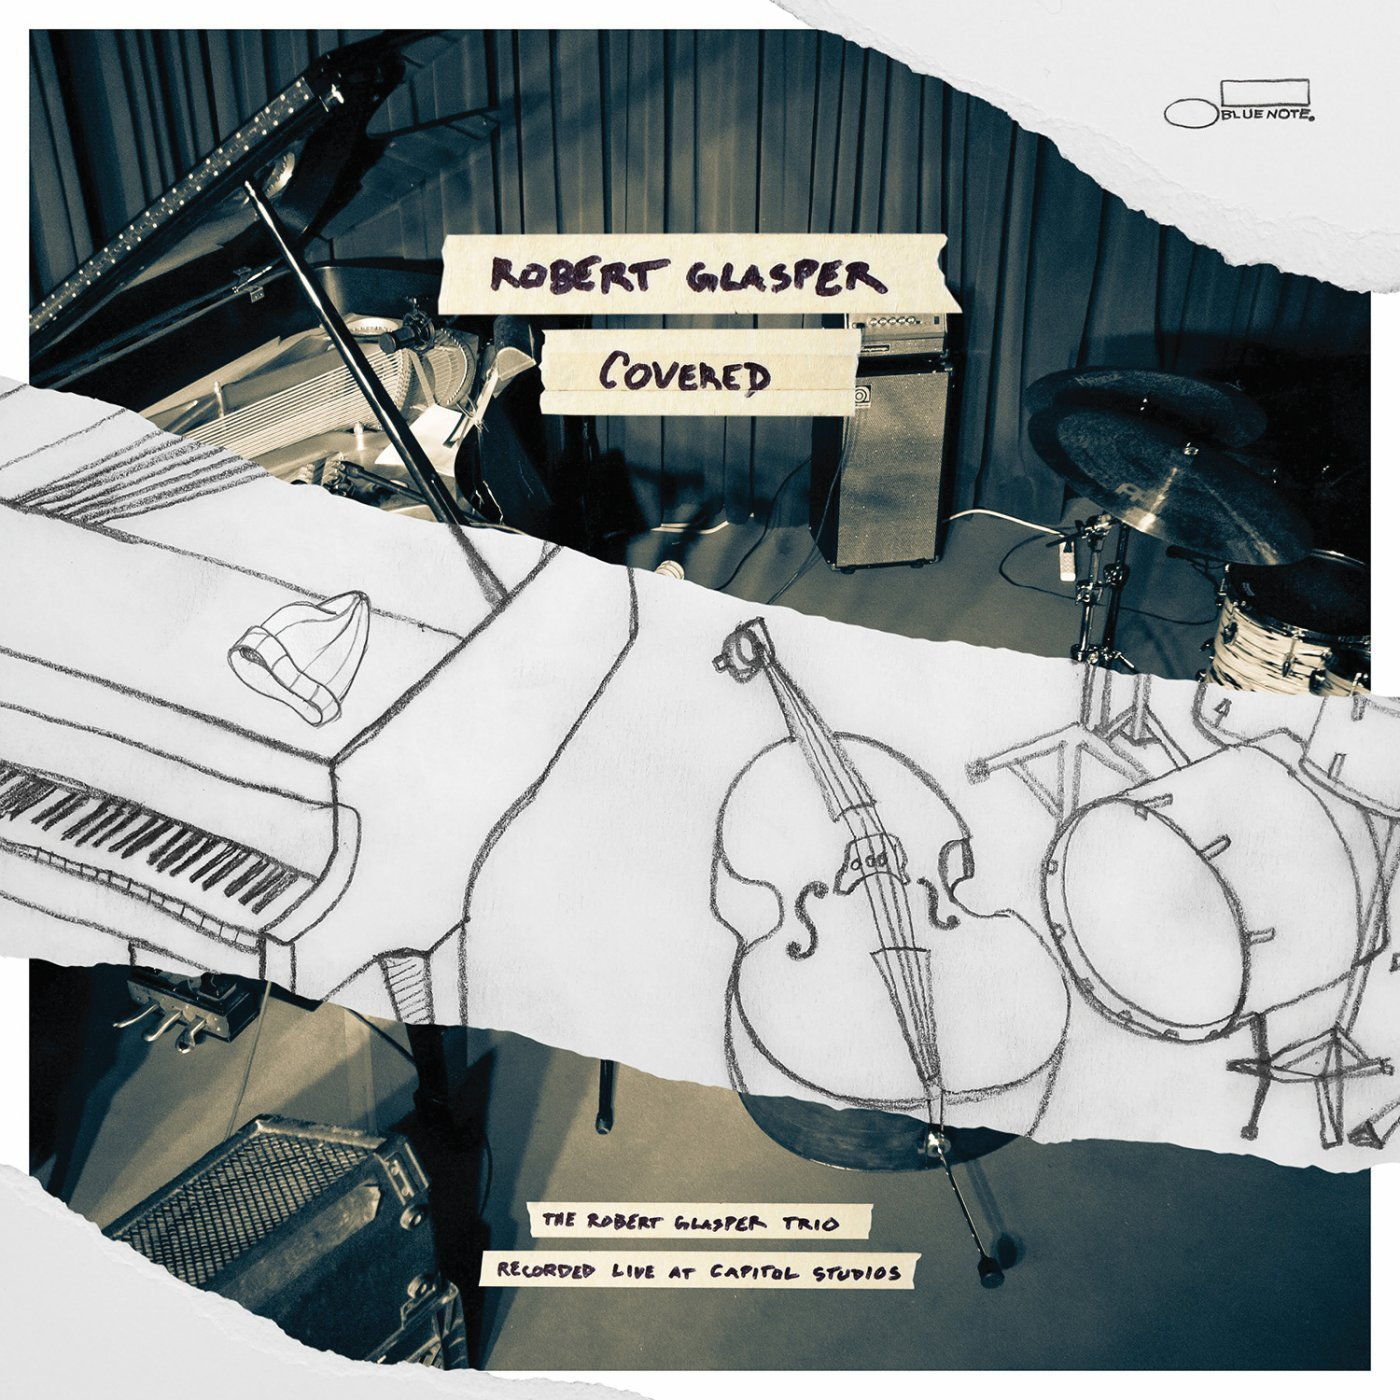 Covered (The Robert Glasper Trio Recorded Live At Capitol Studios) galbraith robert the silkworm pb galbraith robert